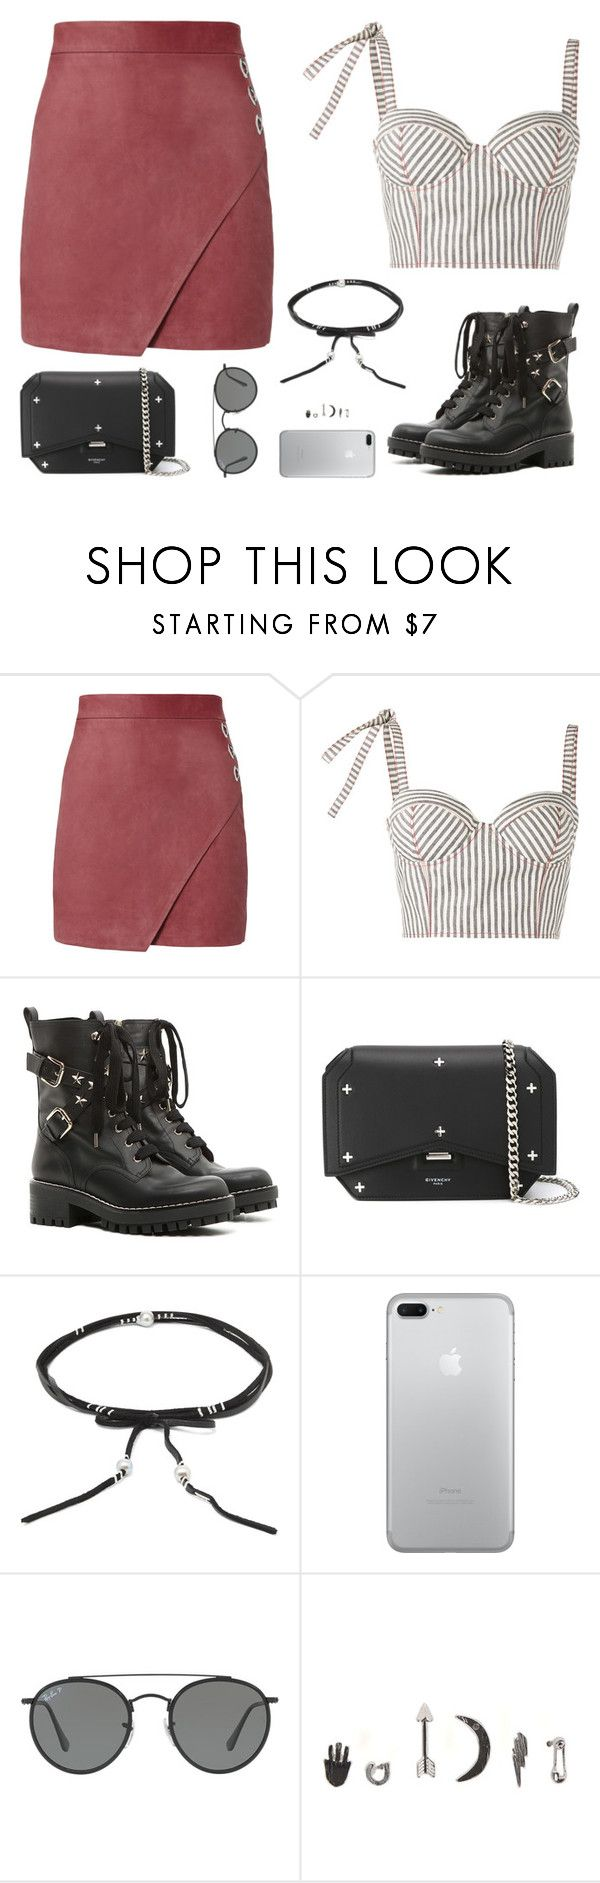 """Sin título #4994"" by mdmsb on Polyvore featuring moda, Michelle Mason, Rosie Assoulin, RED Valentino, Givenchy, Chan Luu, Ray-Ban y With Love From CA"